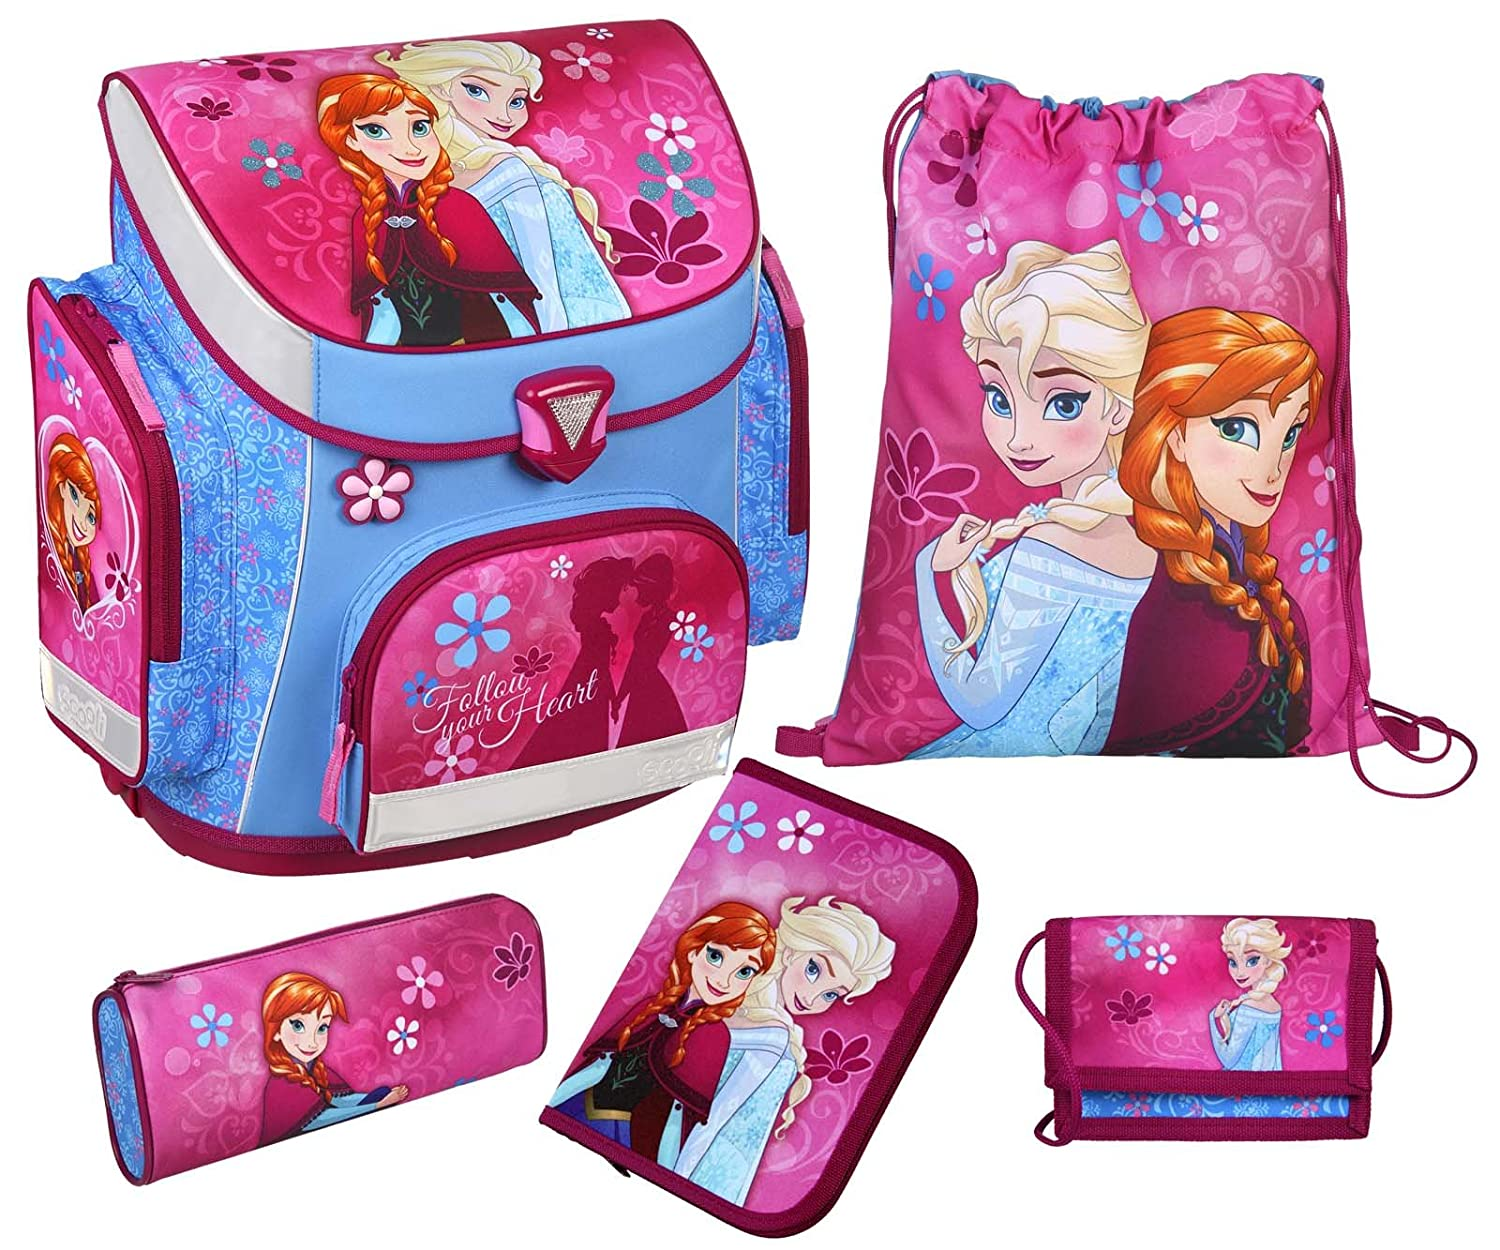 Scooli Schulranzen Set Campus Plus mit Motiv Disney Frozen